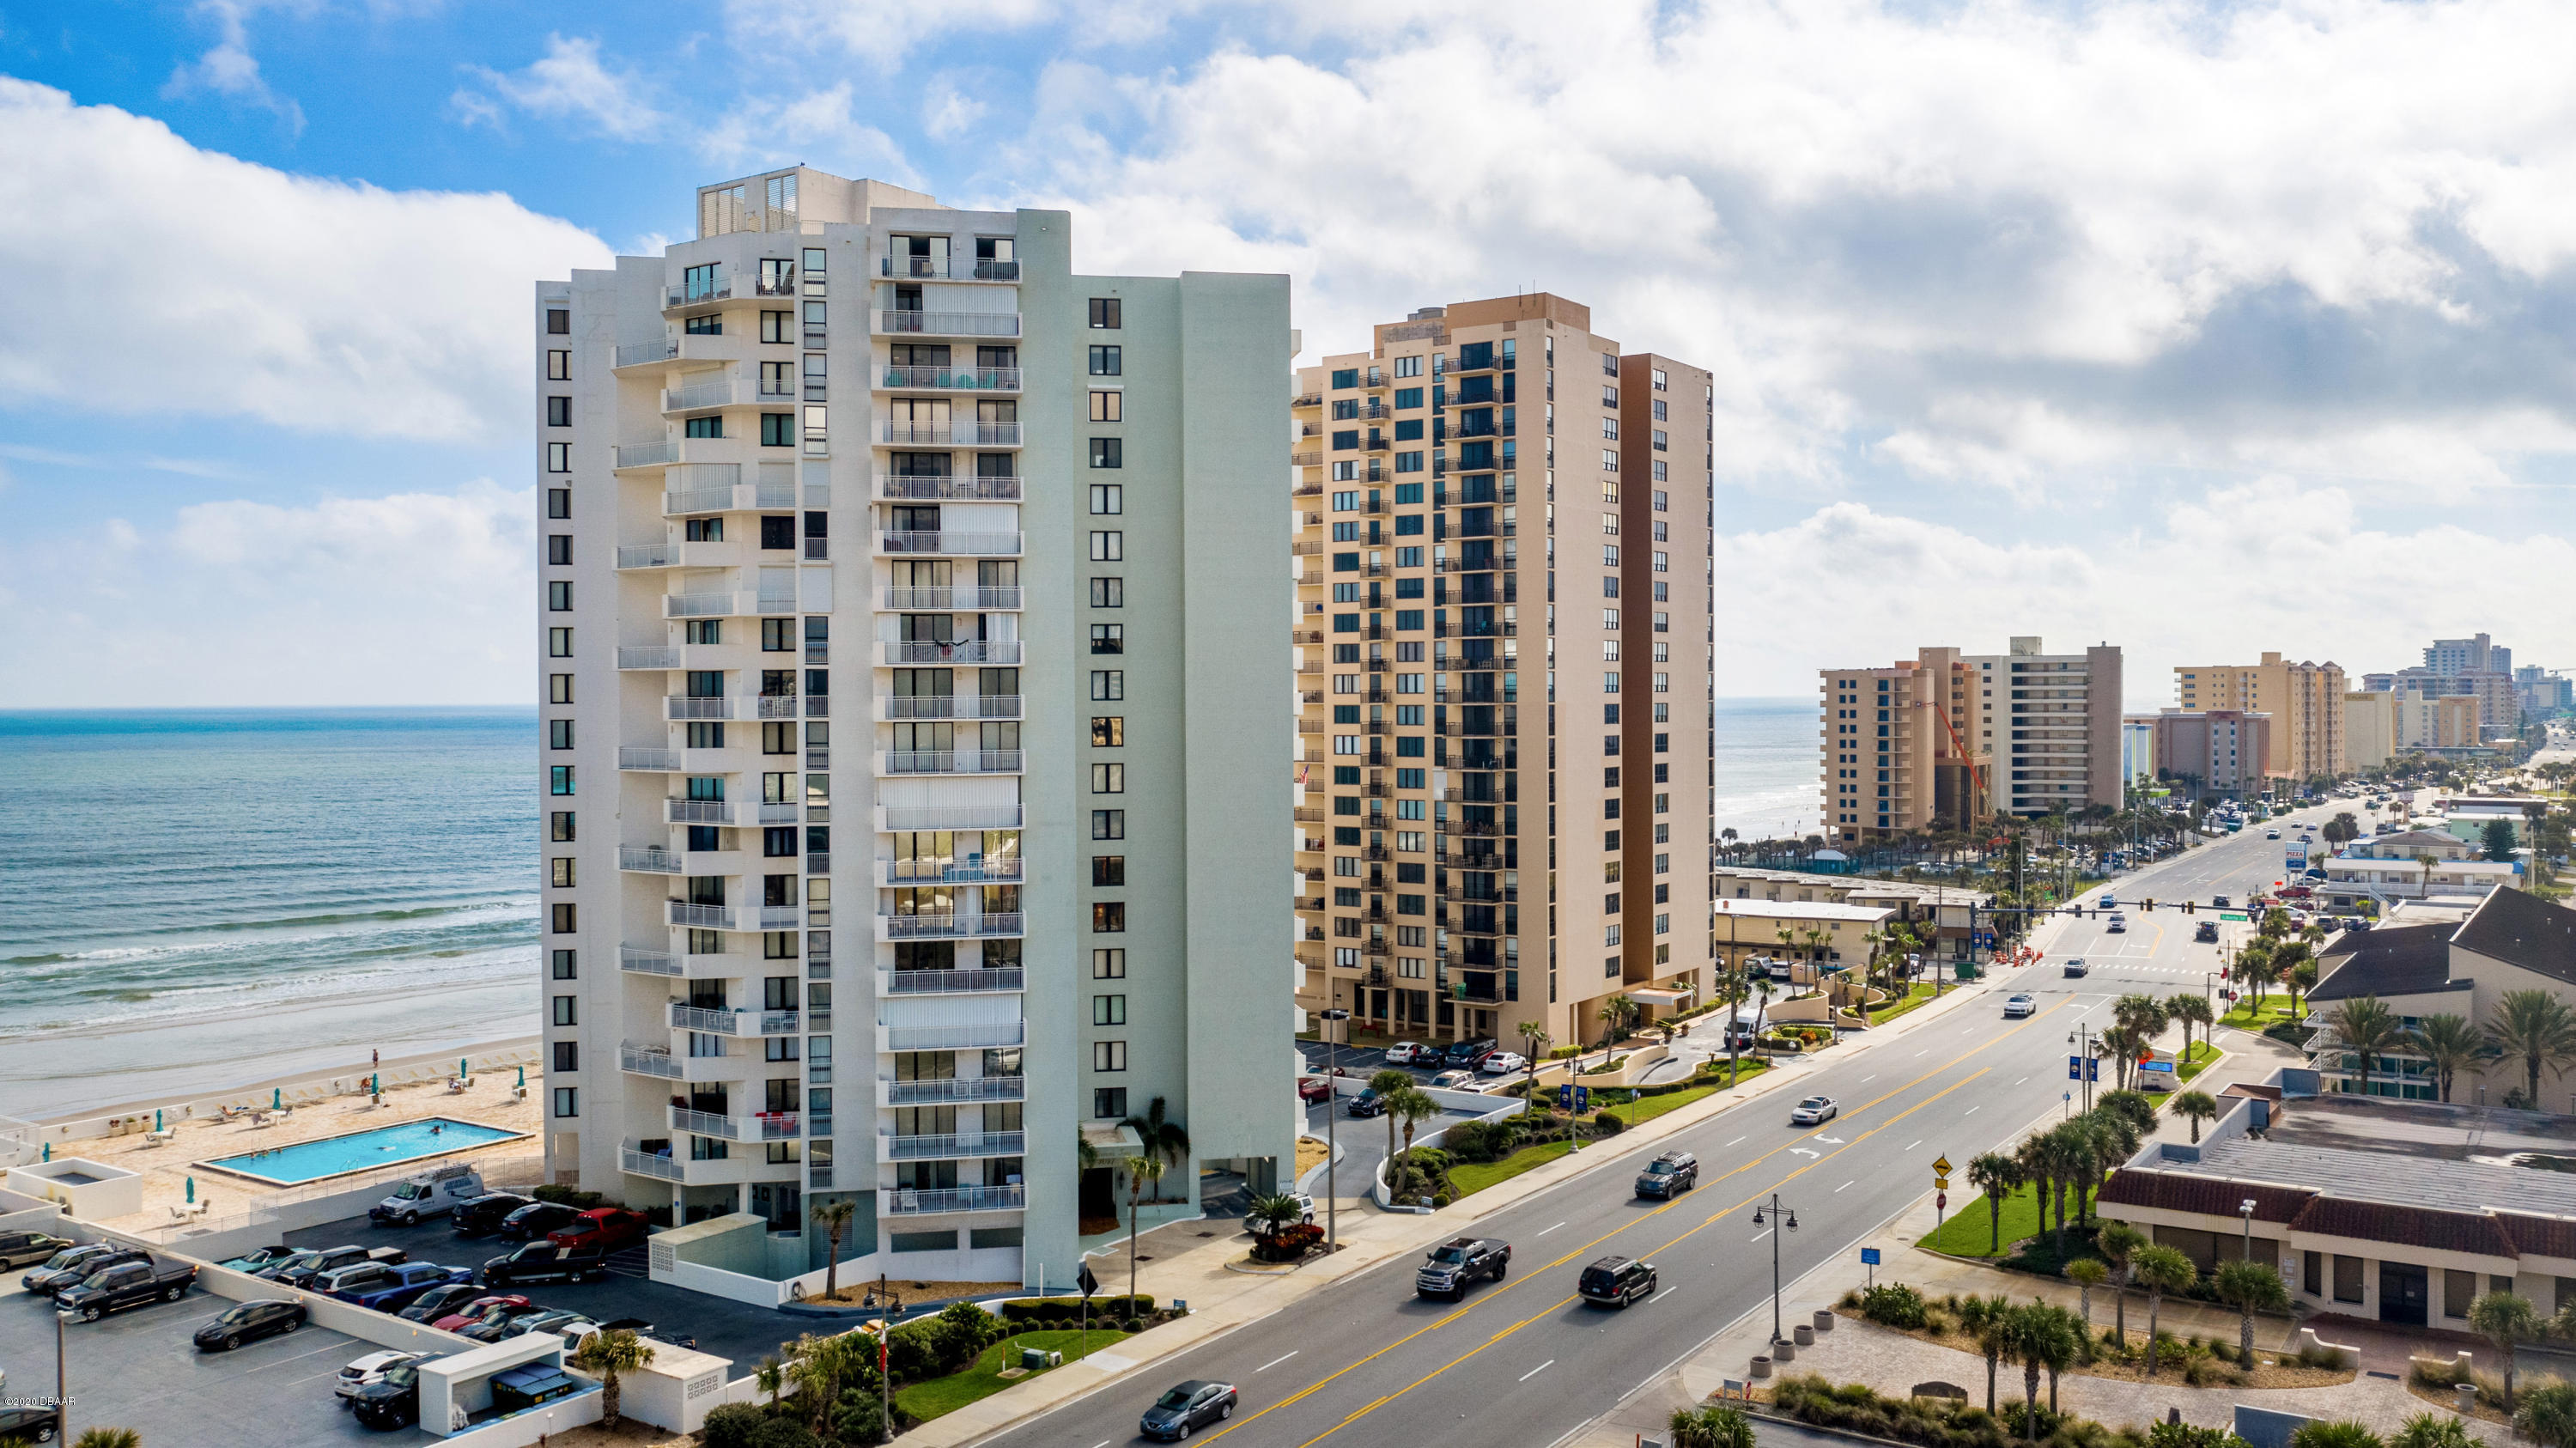 3047 Atlantic Daytona Beach - 1